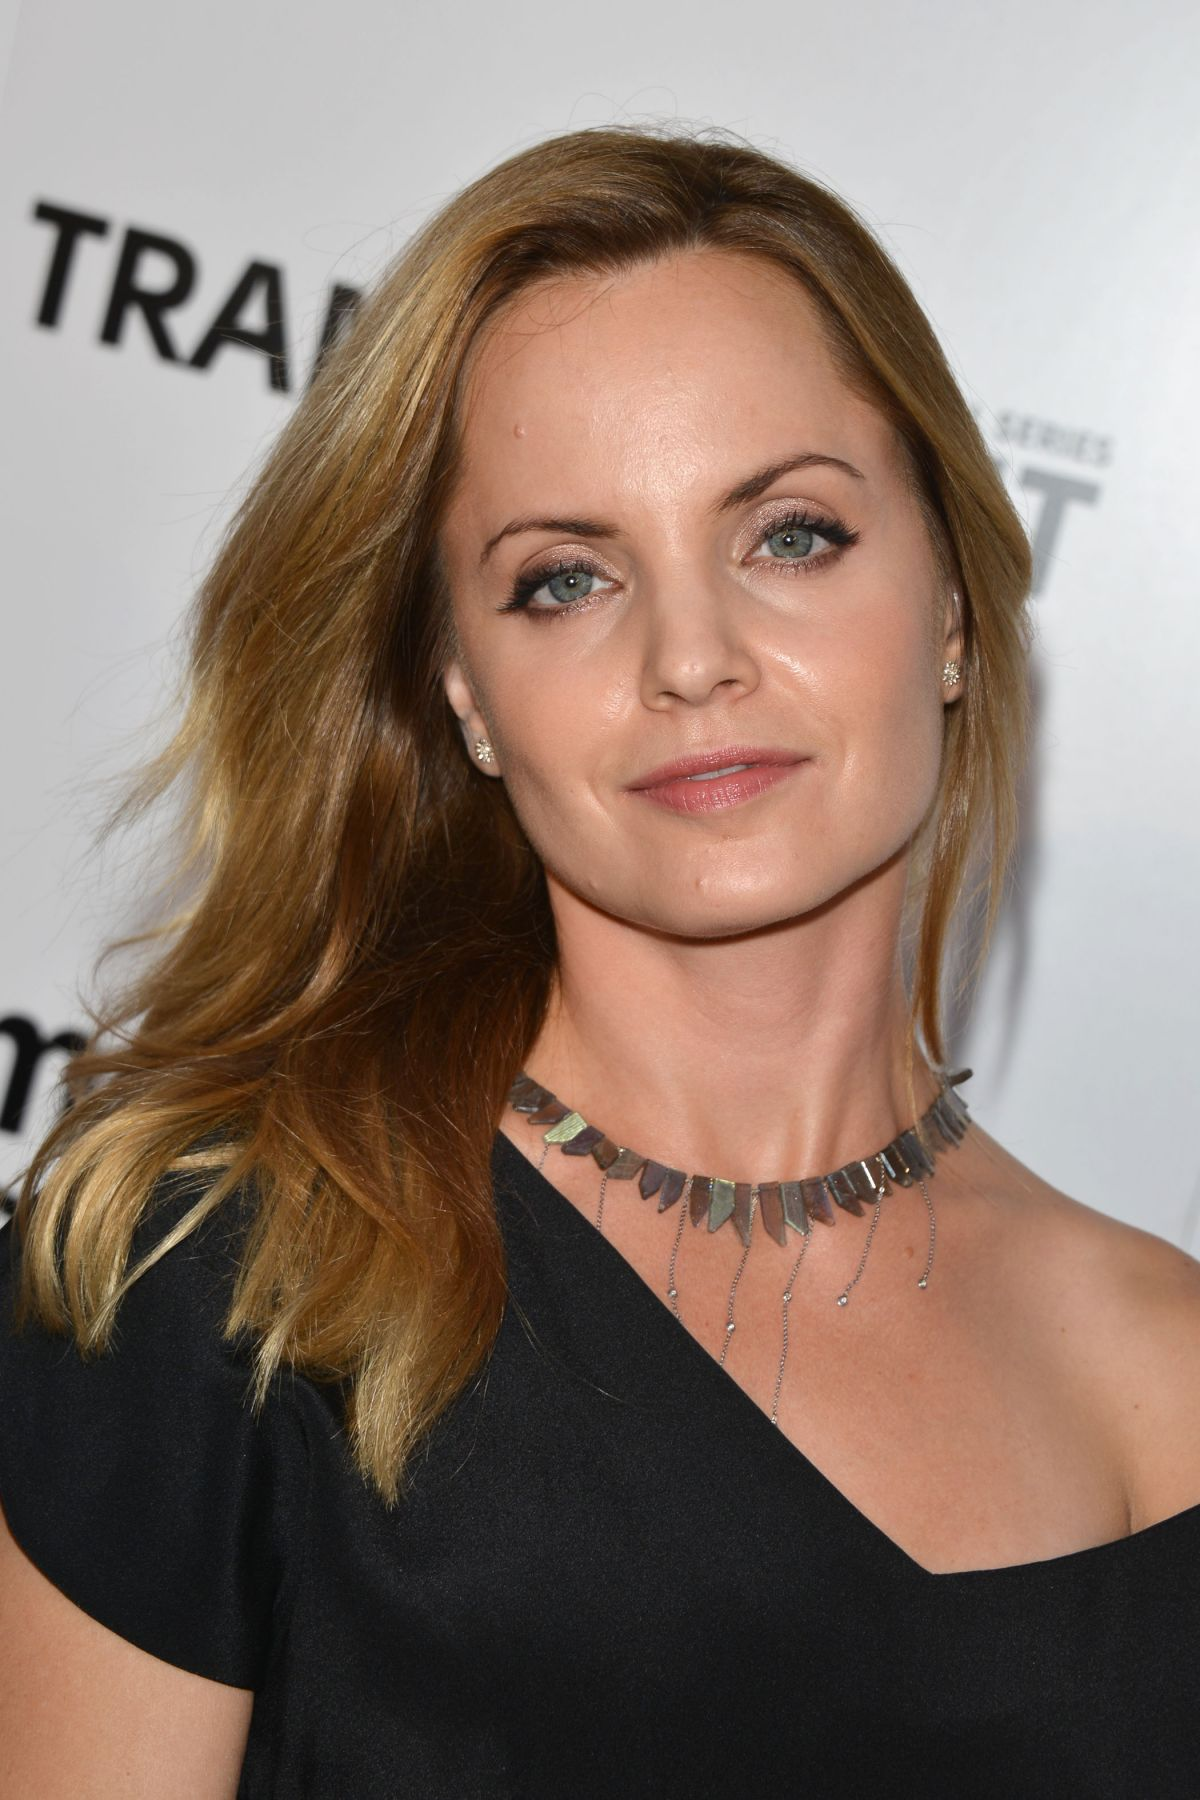 Sideboobs Mena Suvari naked photo 2017